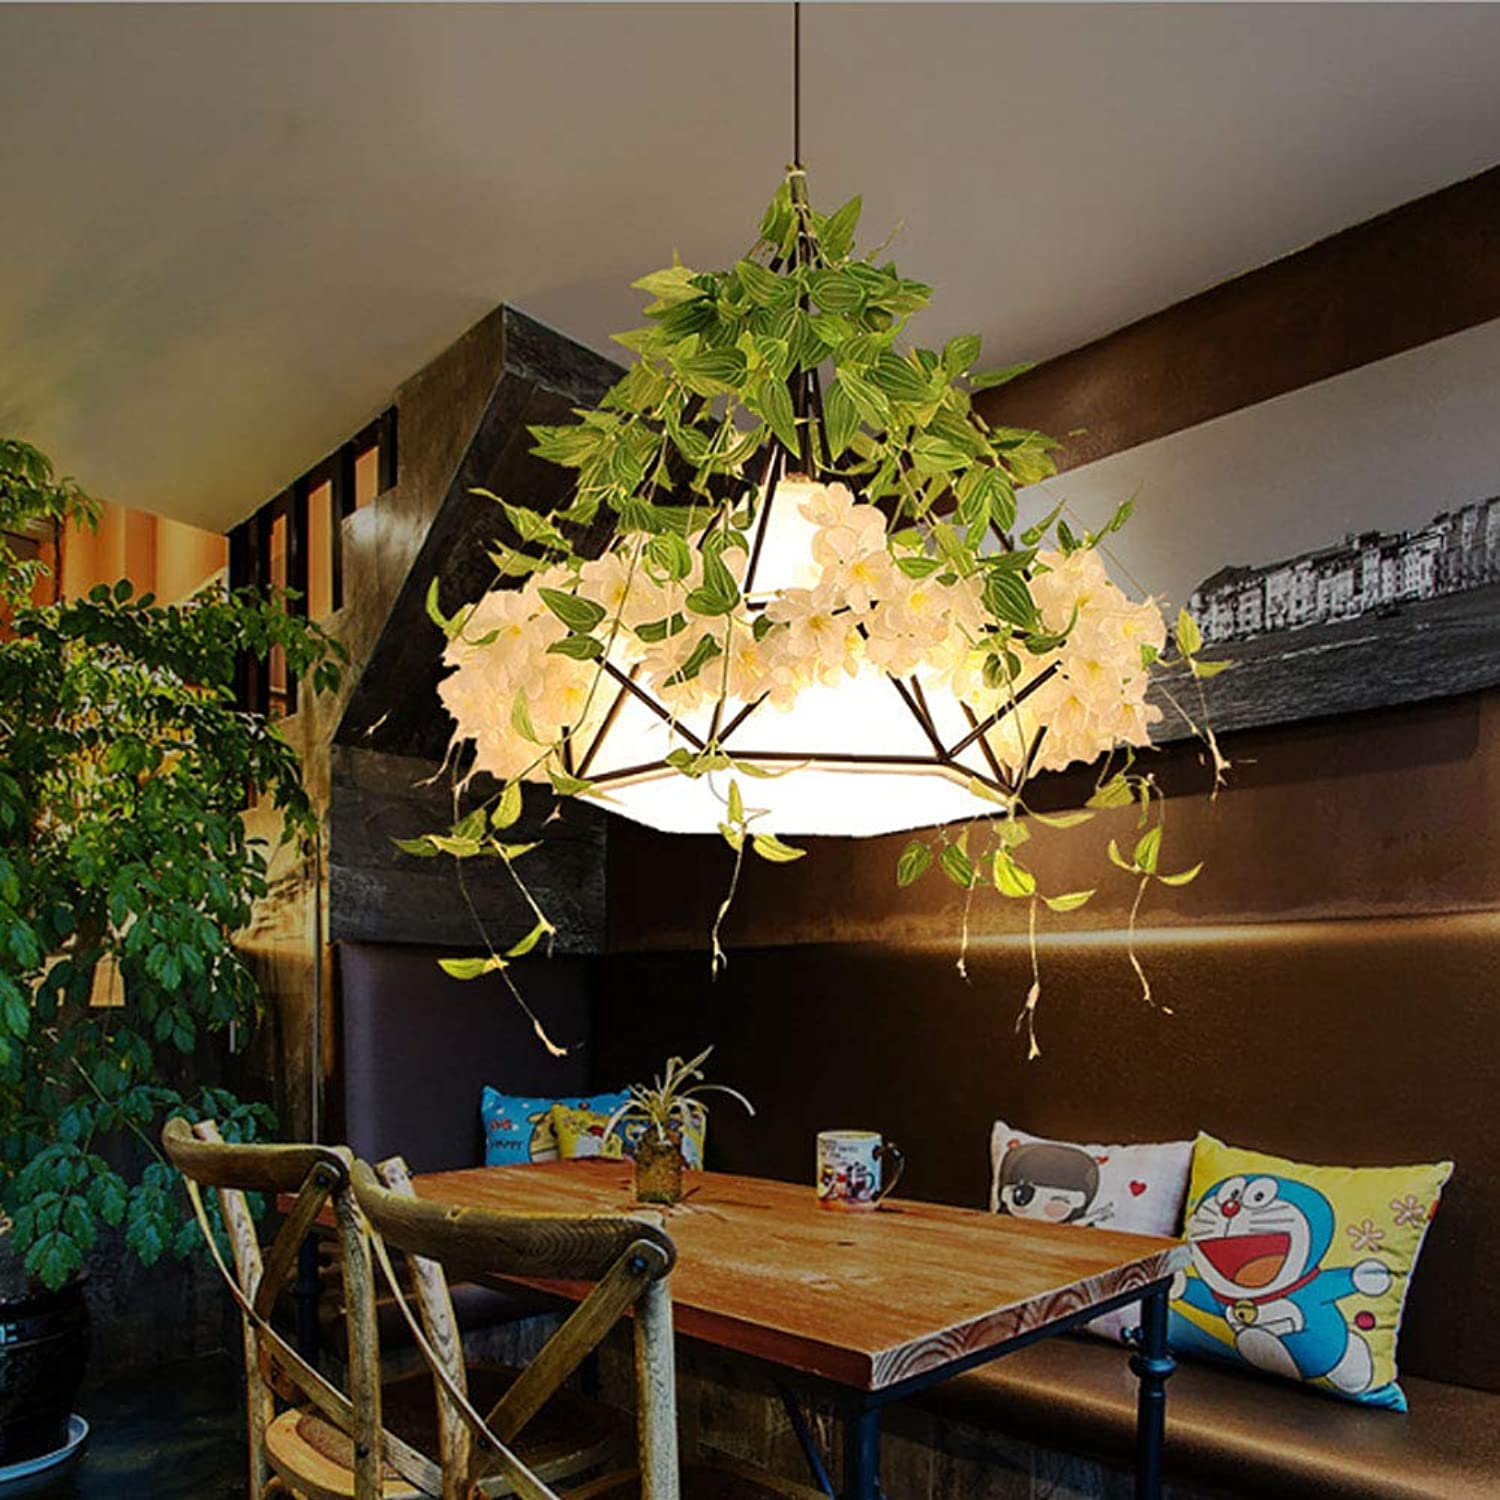 LL Pendant Light Retro Industrial Style Diamond Chandelier Creative Simple for Dining Rooms Window Coffee Shop Chandeliers,Weiß,25x25cm